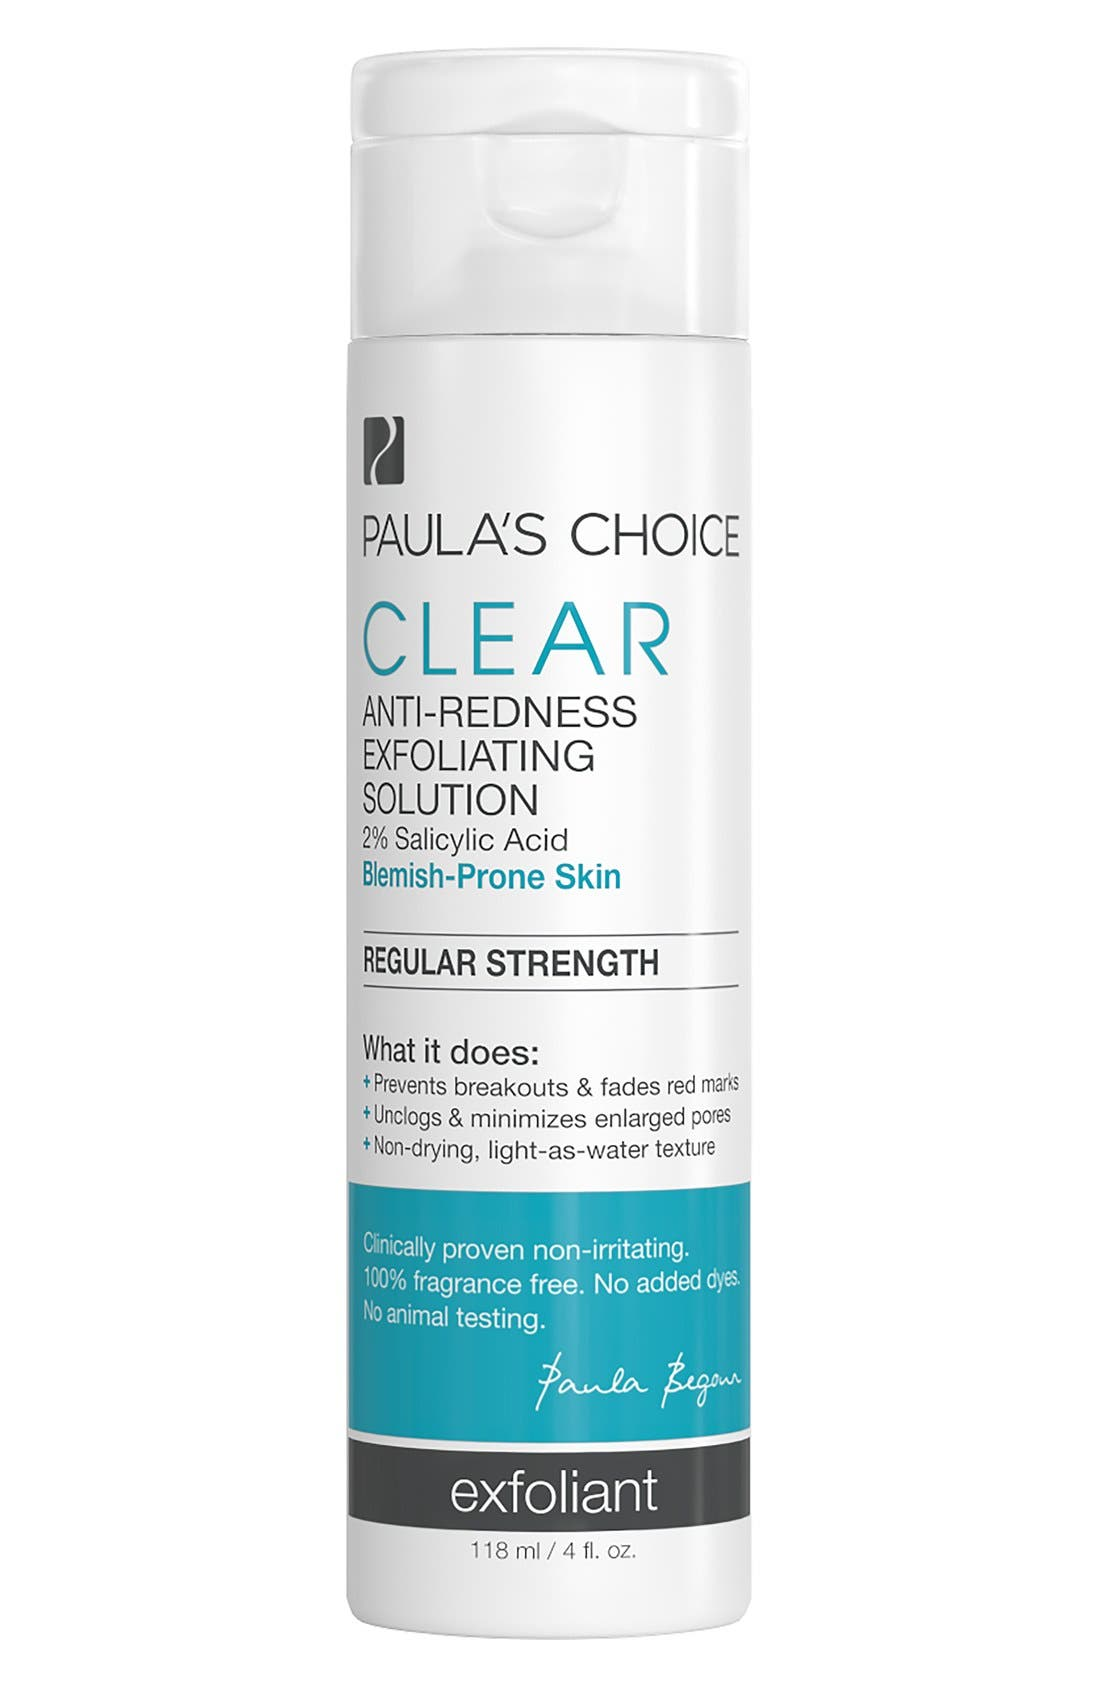 Paula's Choice Clear Regular Strength Anti-Redness Exfoliating Solution